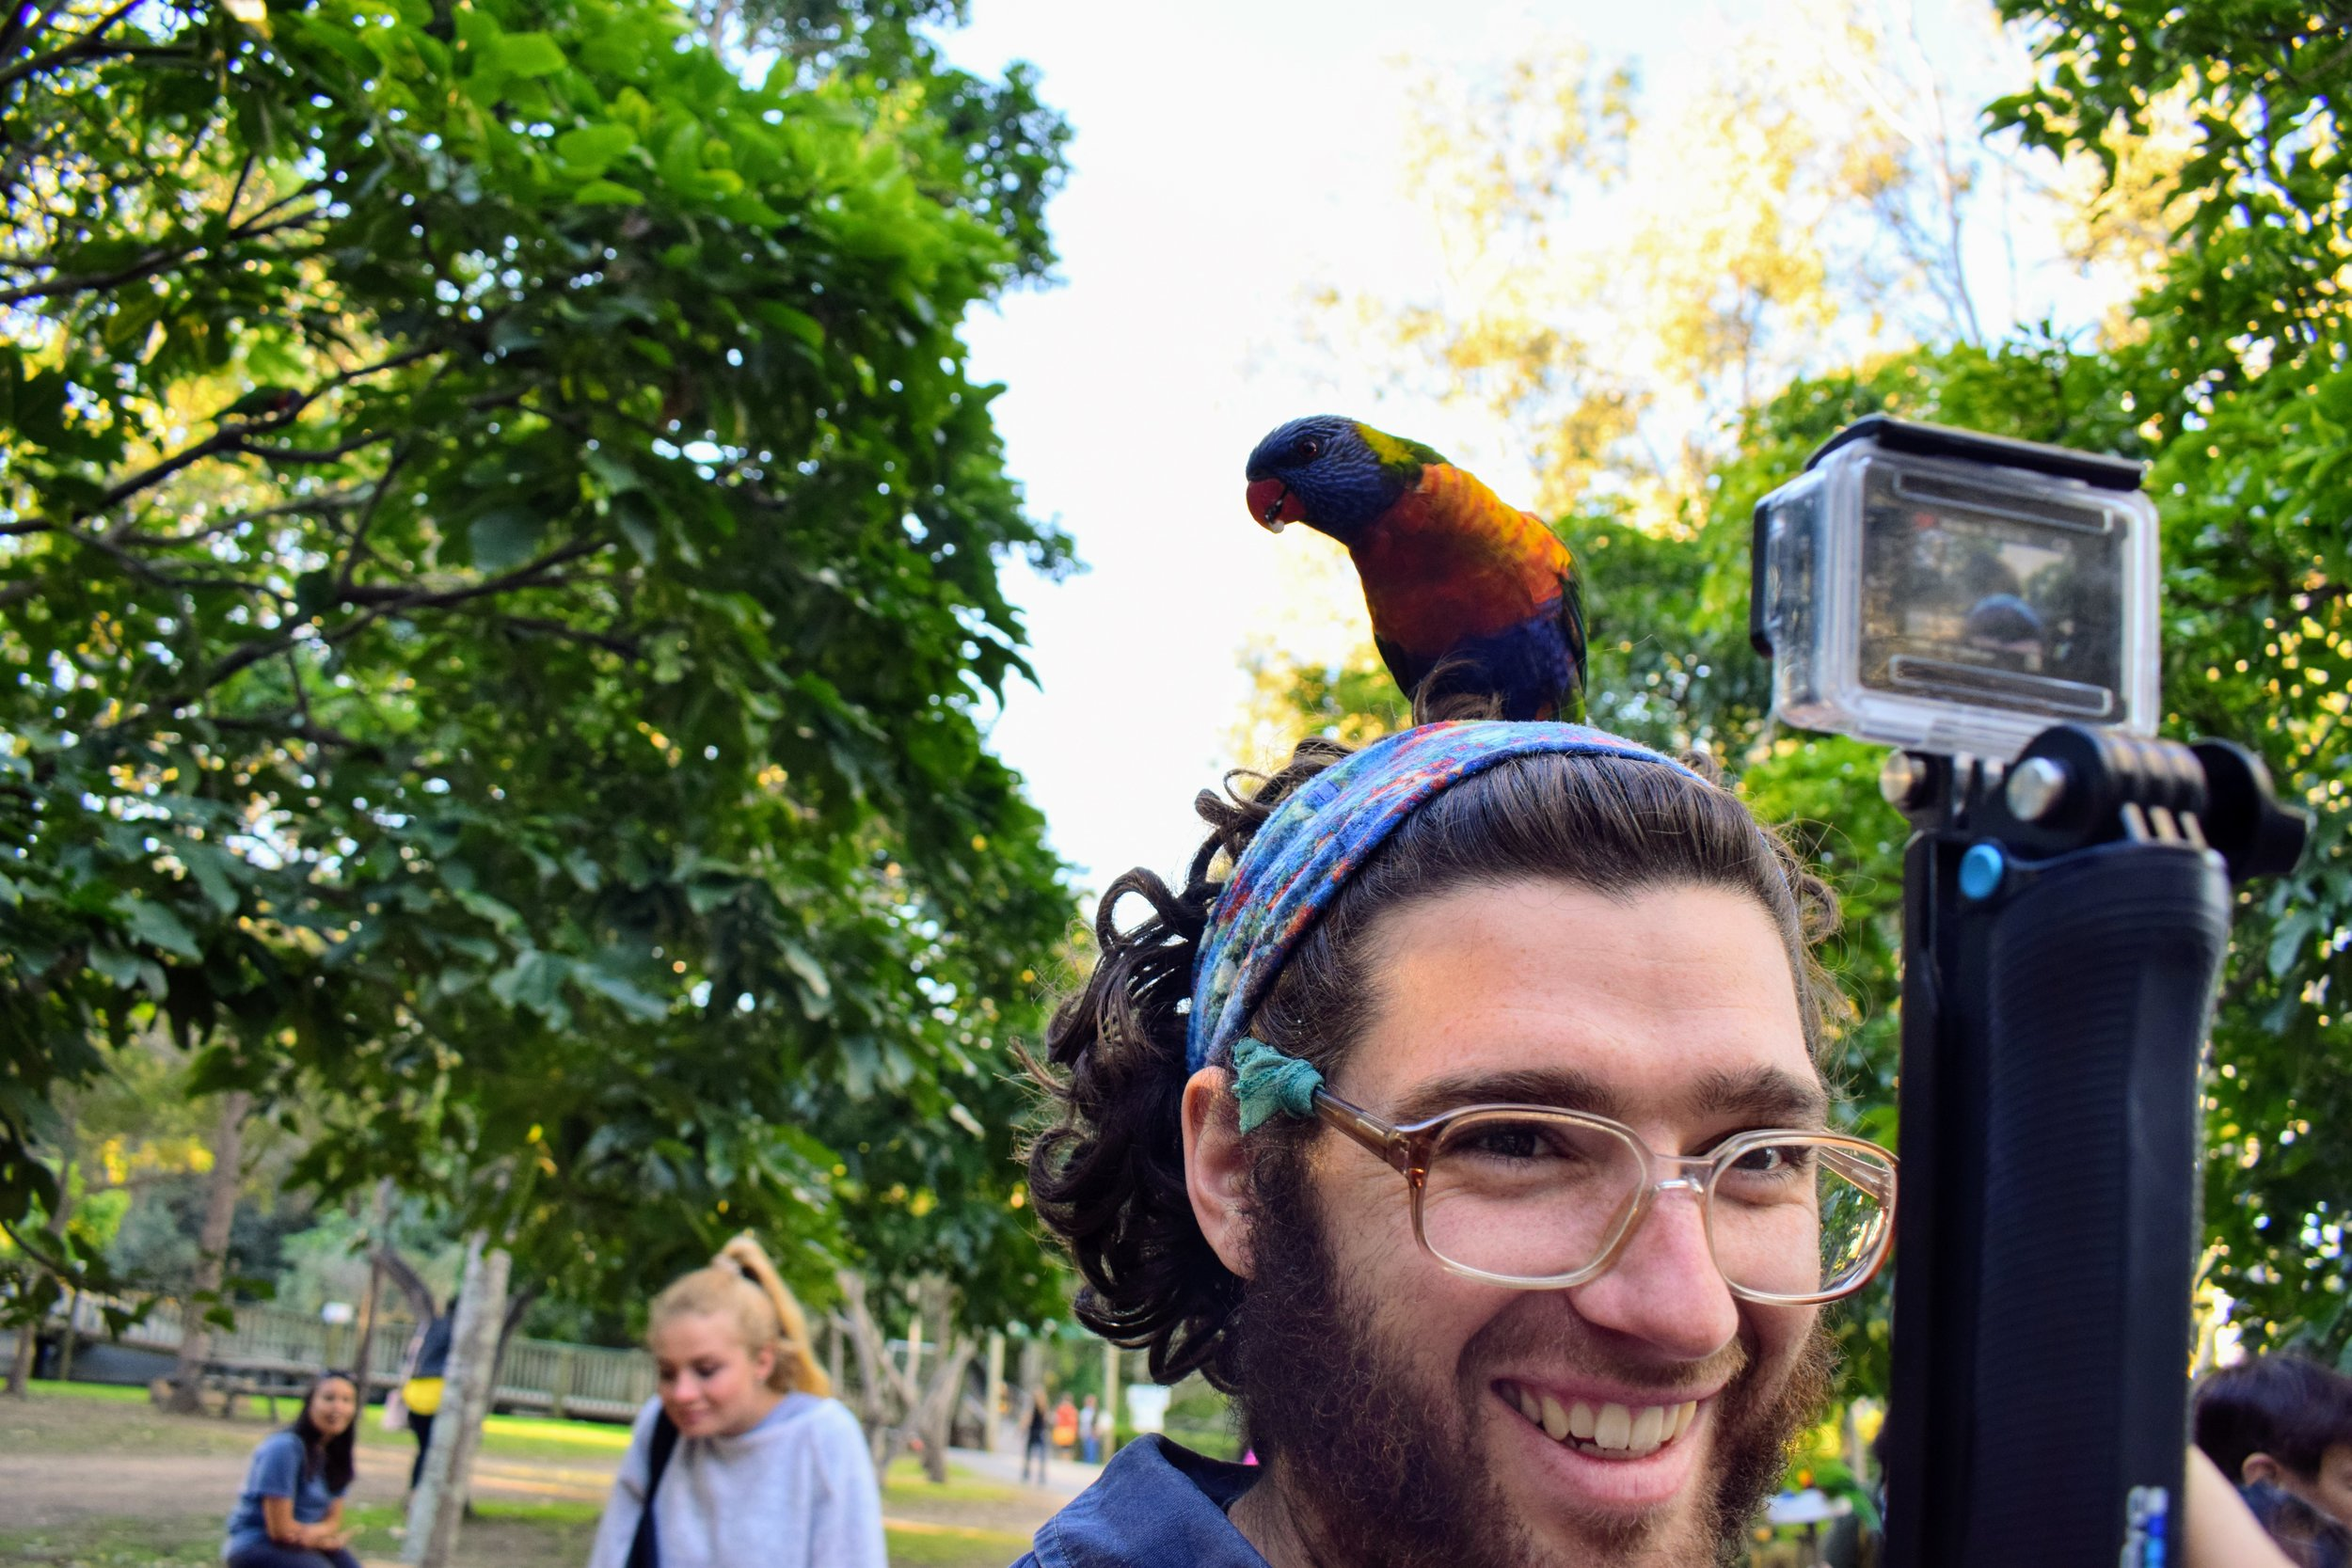 Emmett was filming the lorikeet chaos on the GoPro when this guy landed on his head.